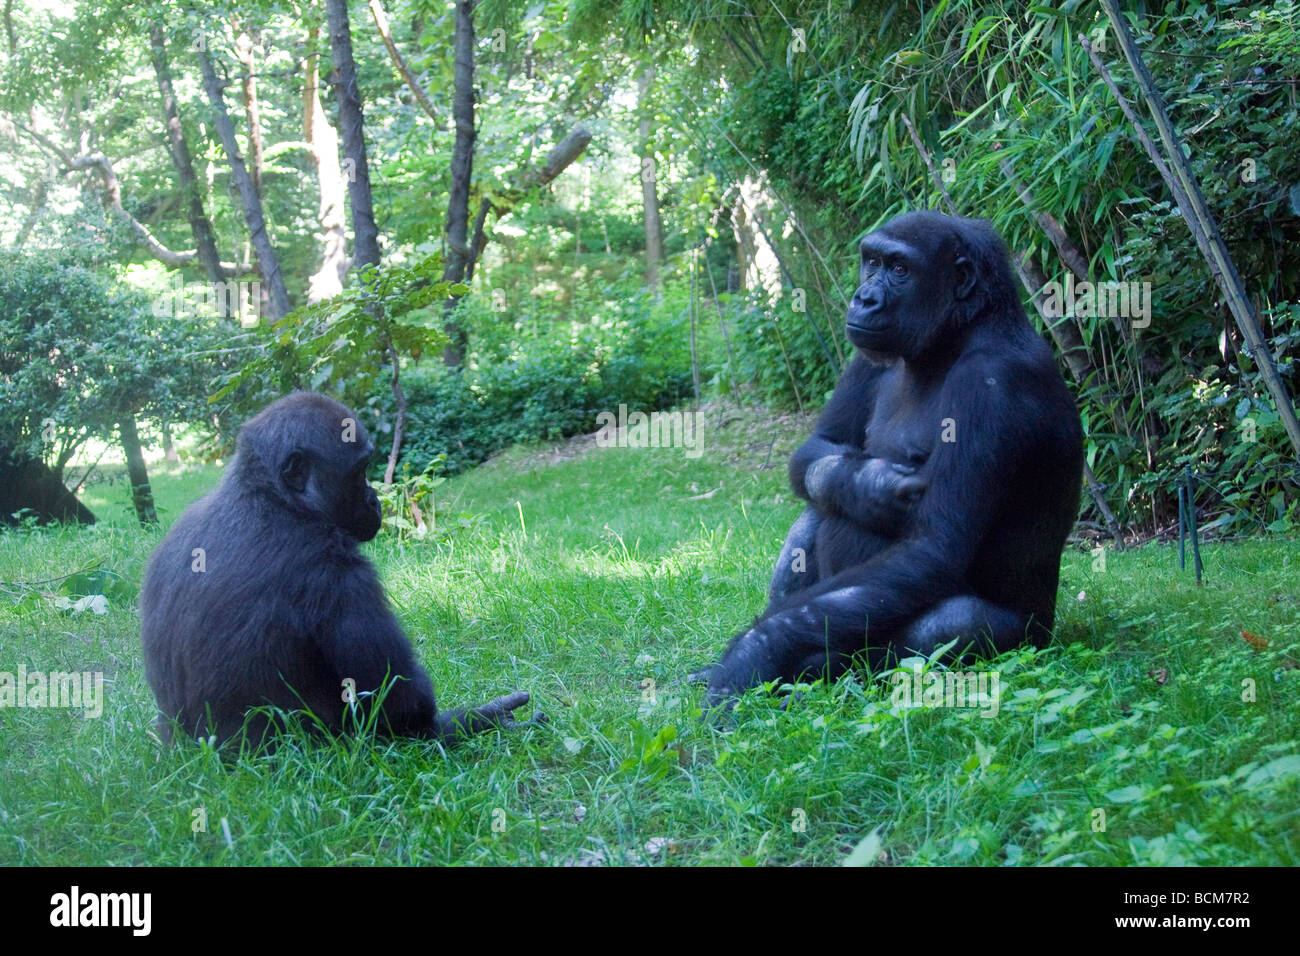 Congo Gorilla Forest, Bronx Zoo, The Bronx, New York City